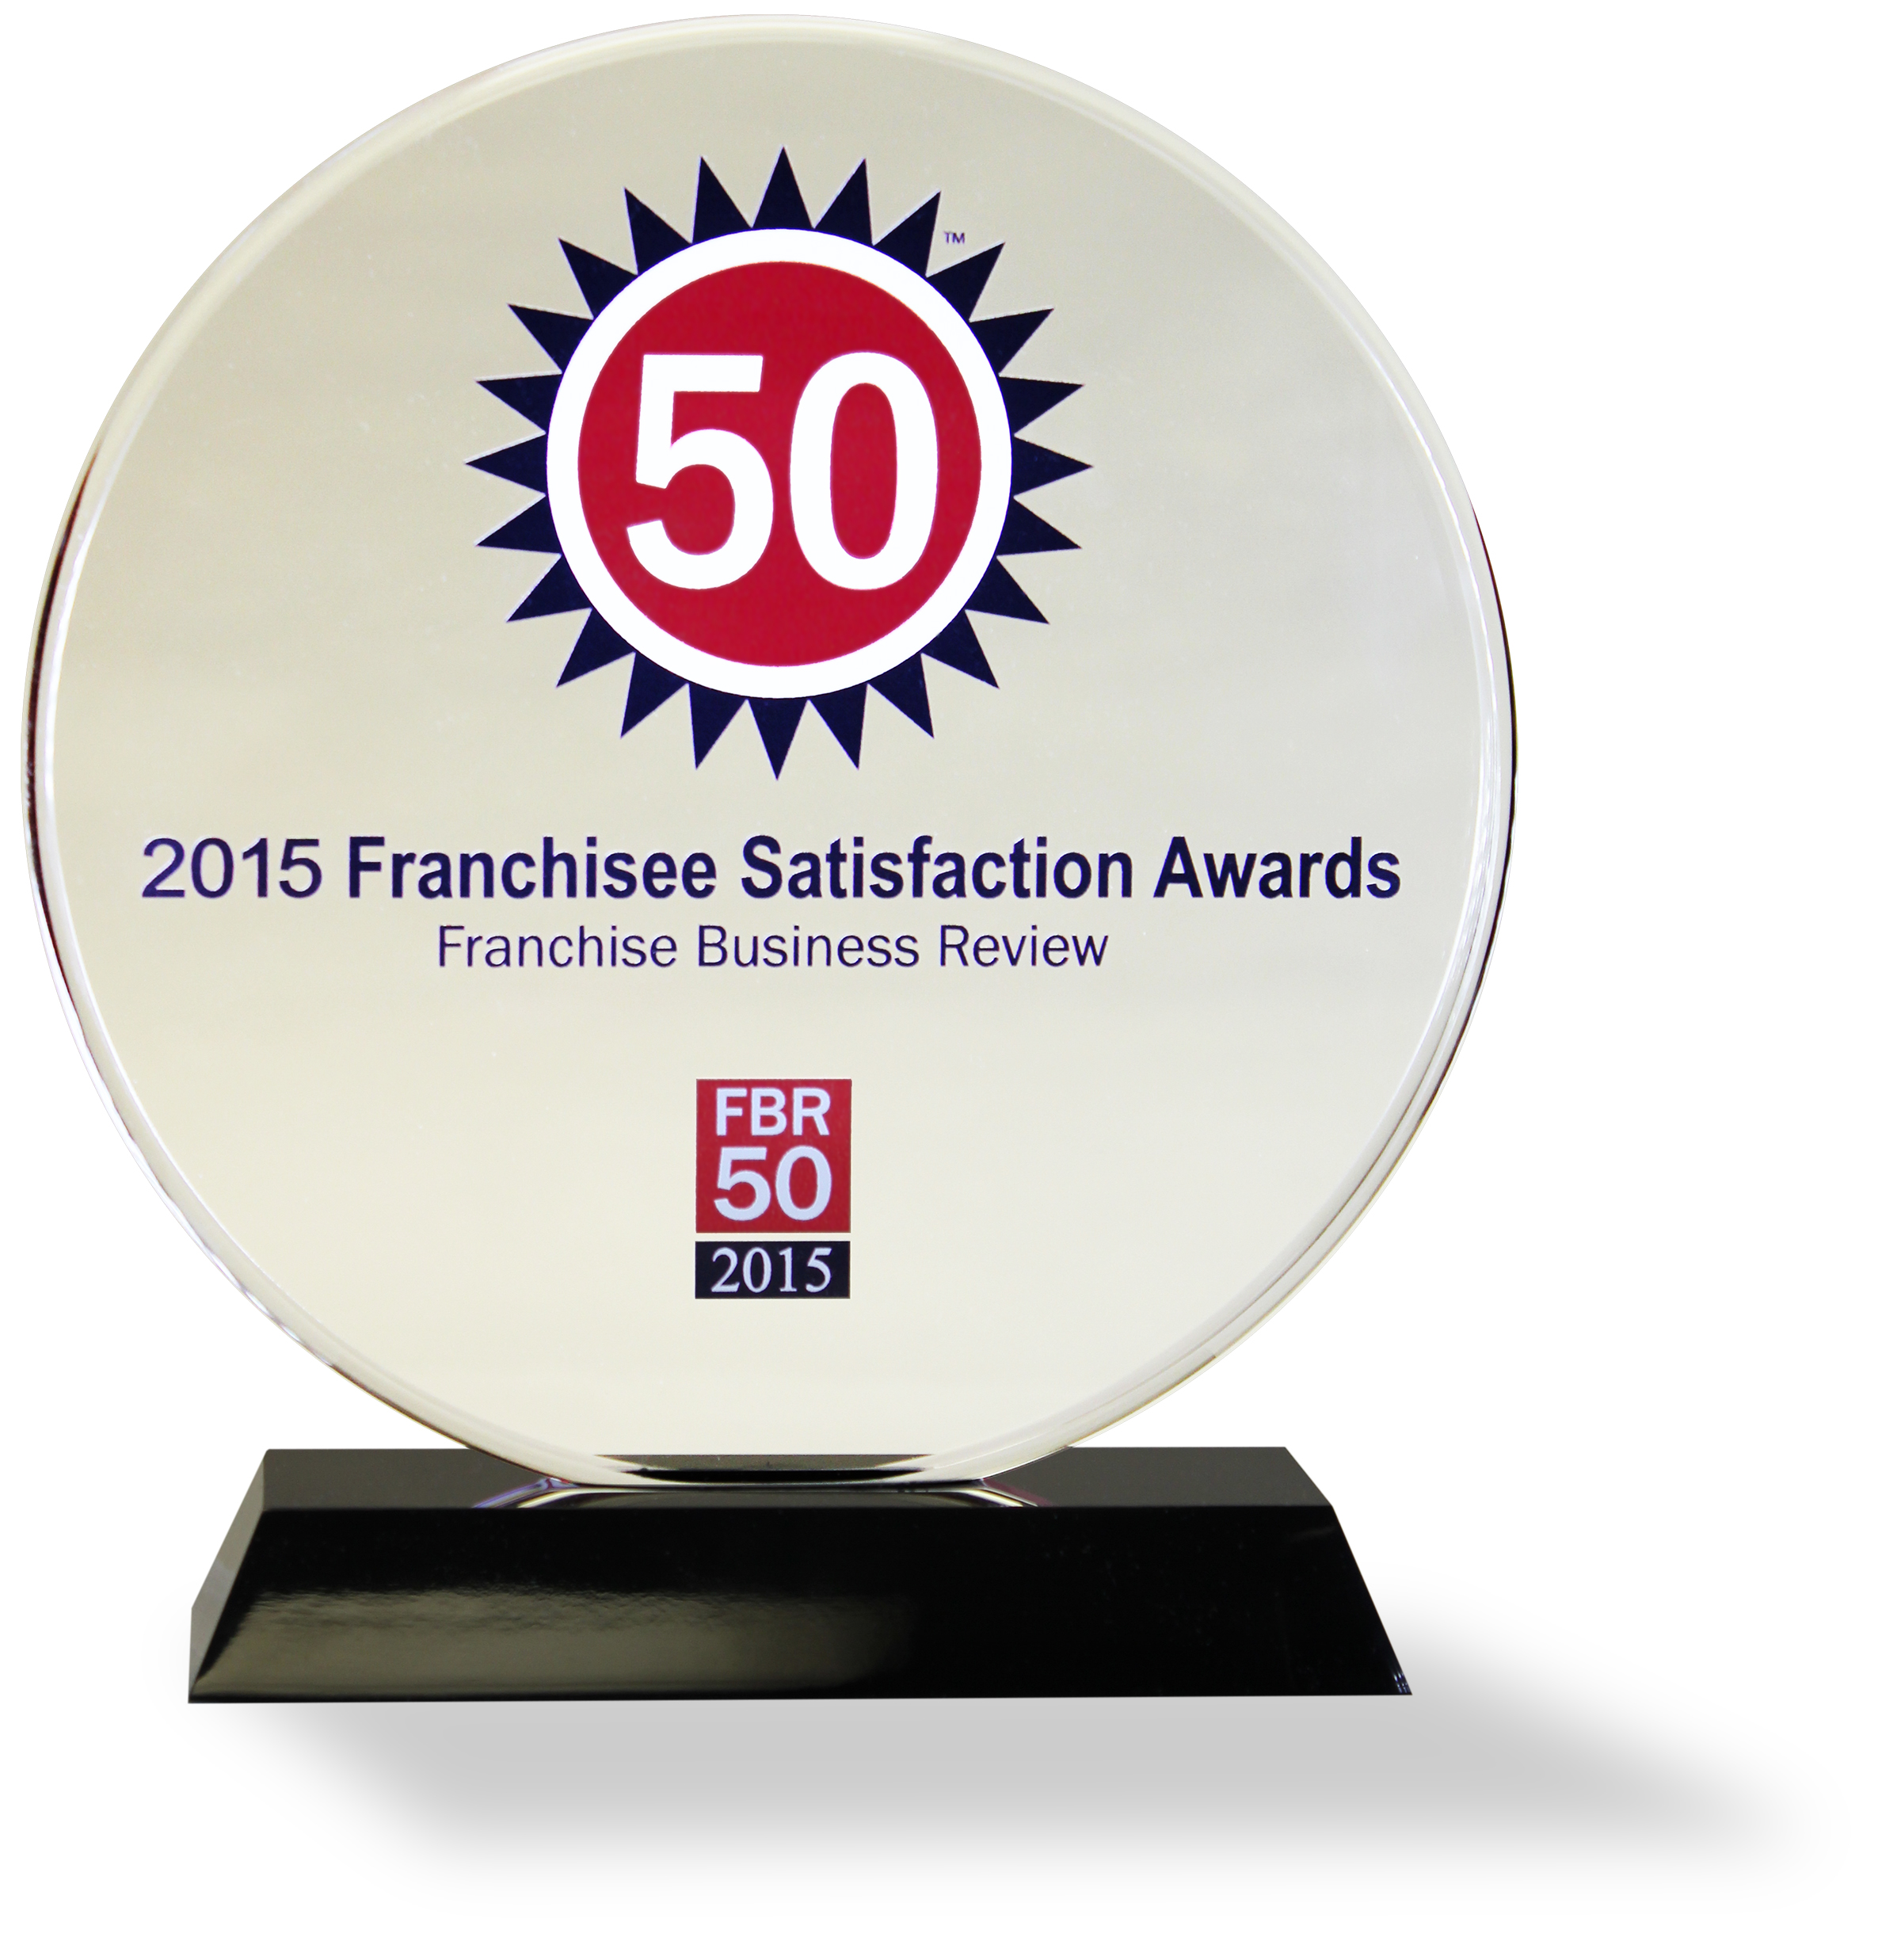 About the FBR50 Franchisee Satisfaction Awards